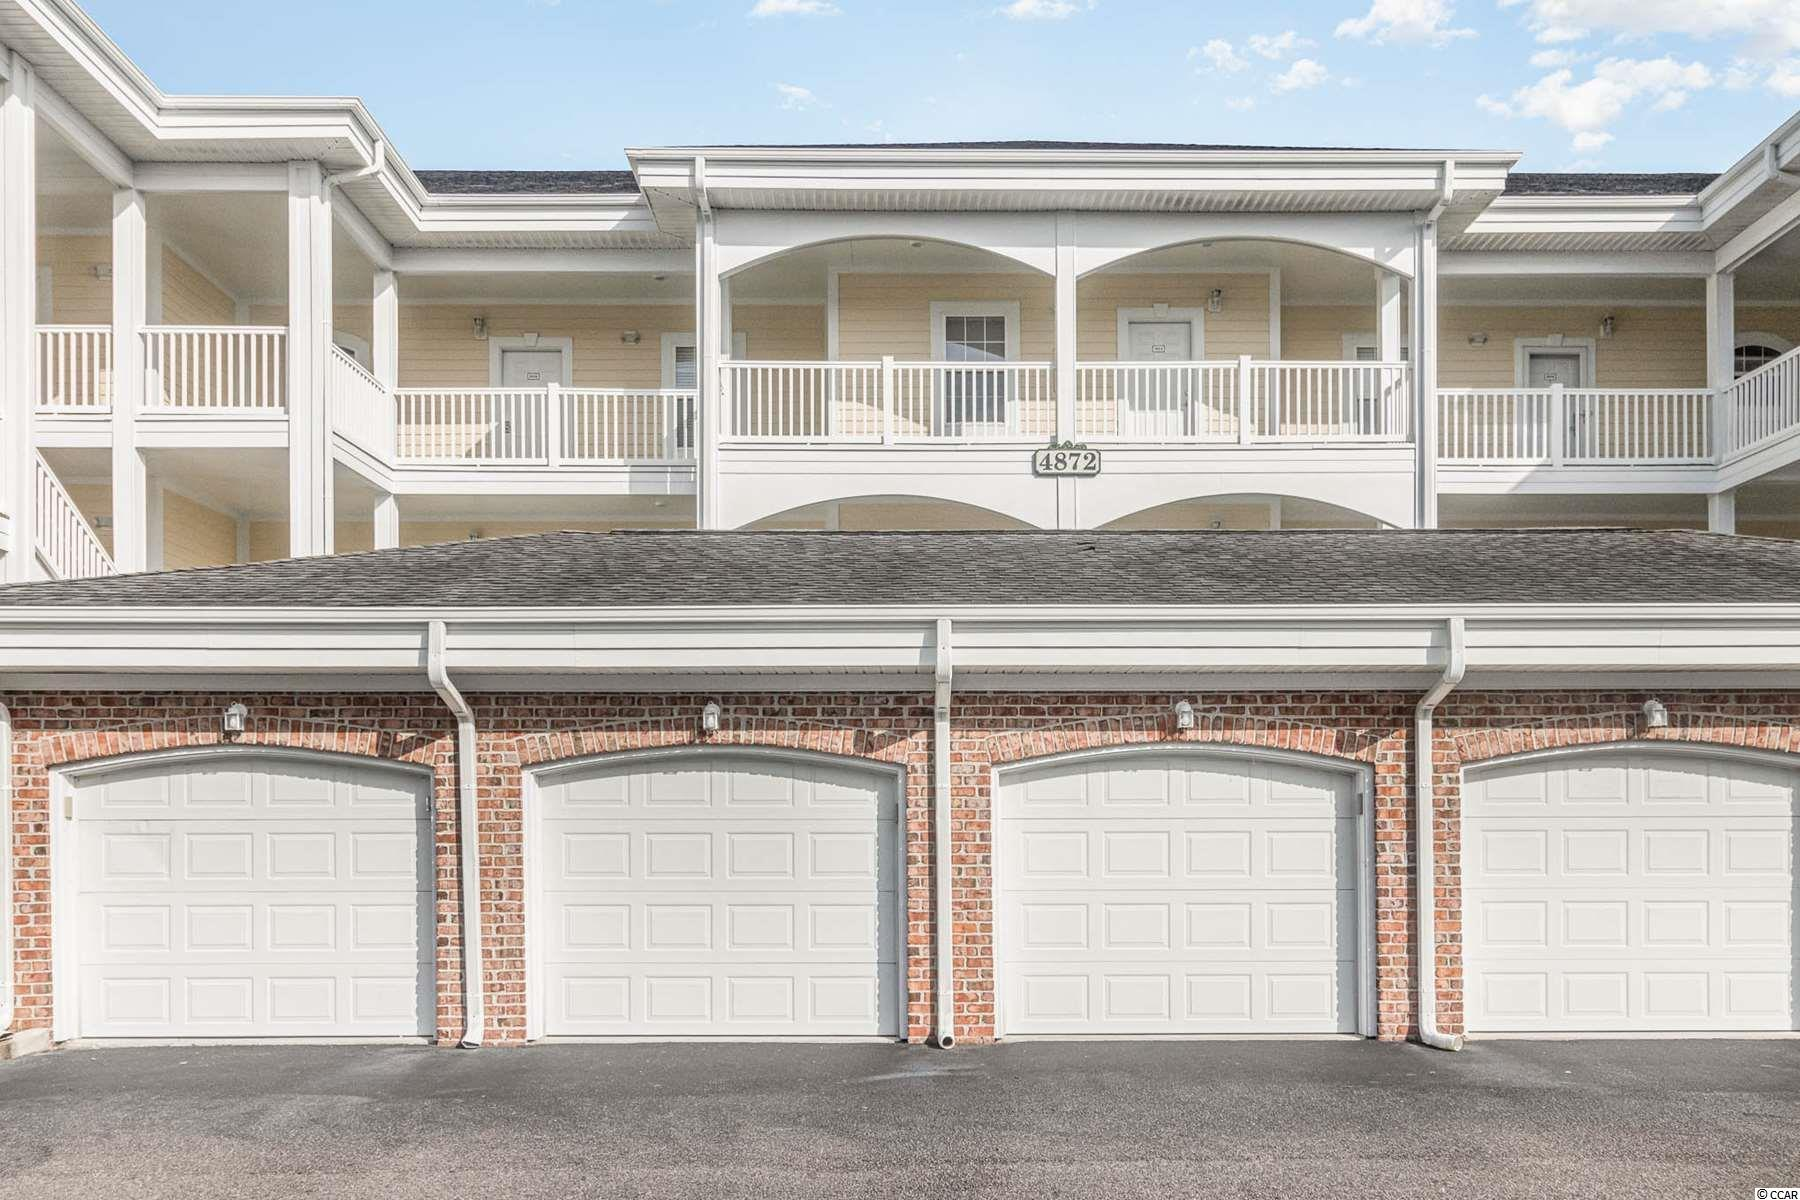 Welcome home to this beautiful fully furnished 2 bedroom, 2 full bath condo in the lovely community of Magnolia North in Myrtle Beach! This unit features an open living and dining area with plenty of natural light, a sunny kitchen with a window, all appliances and plenty of cabinet and counter space, and a private porch with a relaxing view of the lawn and pool and a convenient storage closet. The master bedroom offers a walk-in closet, ceiling fan, and a private full bath. Magnolia North owners and guests enjoy a community pool and grilling area. The central location offers easy access to major road, just minutes to the beach, and all the shopping, dining, and entertainment the Grand Strand has to offer!